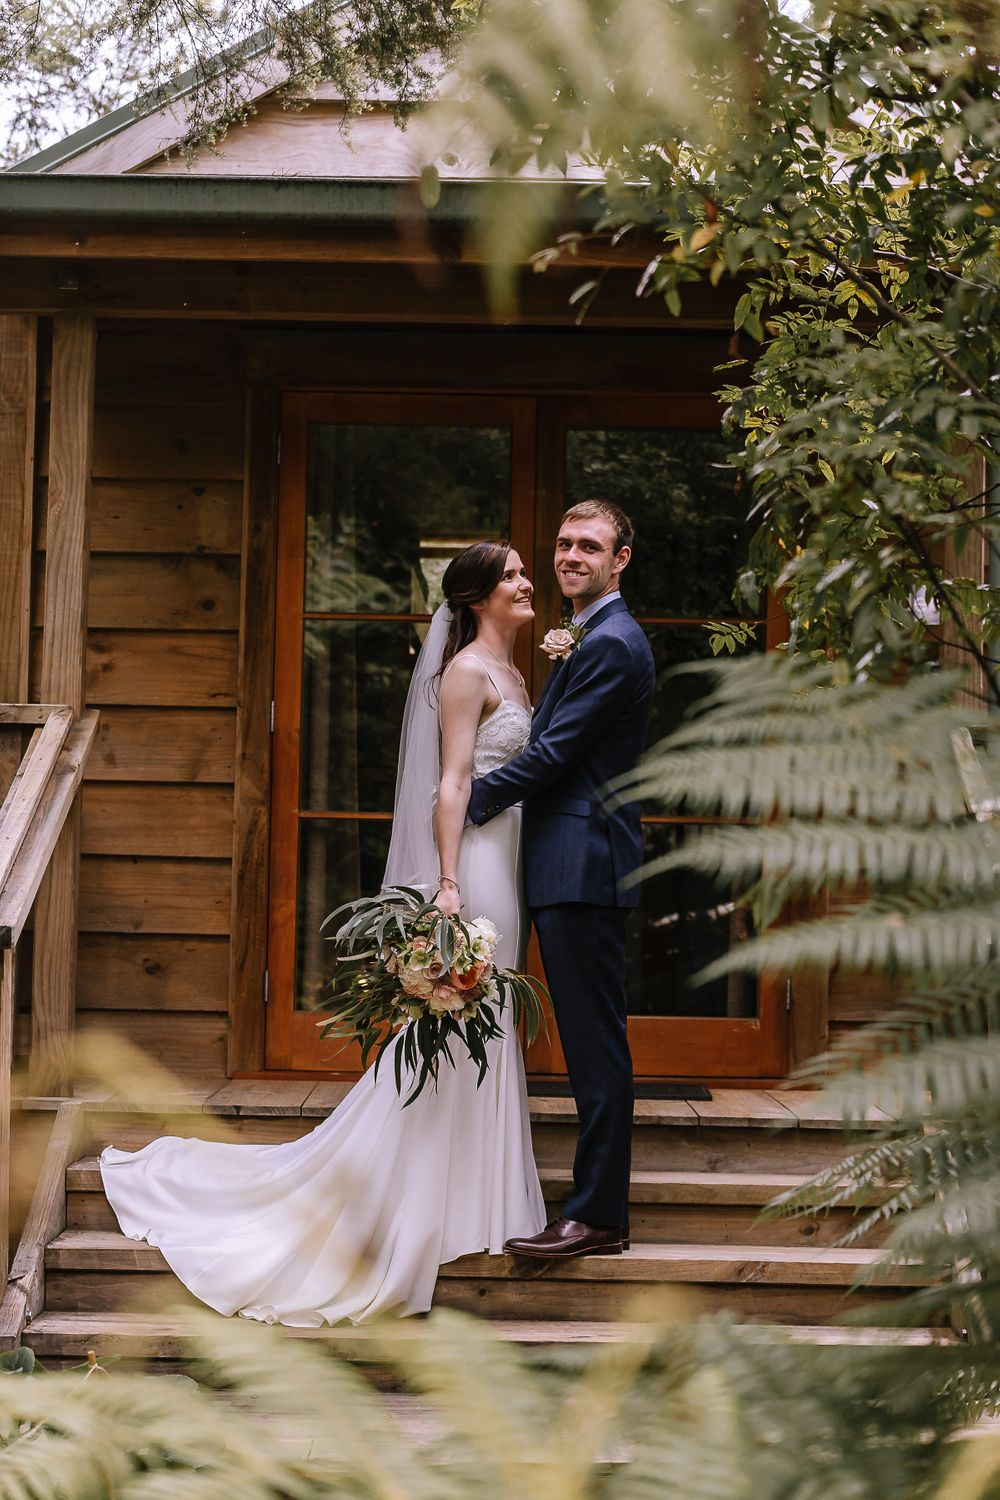 Leah and Grant Bridal Cabin - Hush Boutique Coromandel